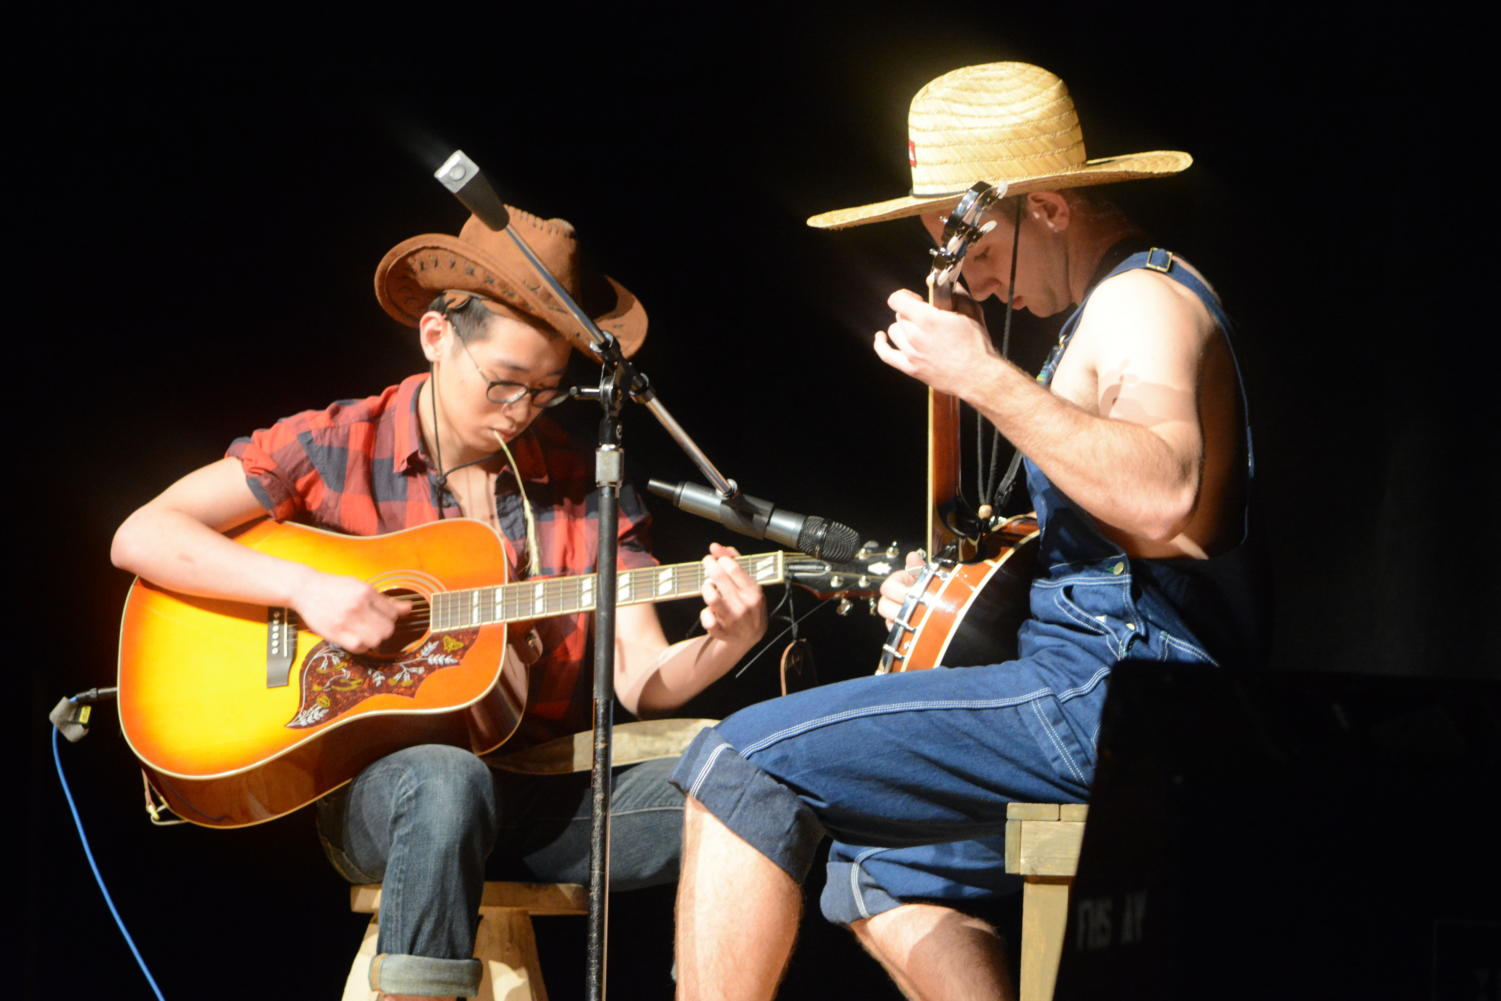 Cream of the crop-- Seniors Travis Cheung (left) and Chris Lagosz (right) start off the talent show with a medley played on the guitar and banjo. The talent show took place on March 23 in the high school auditorium.